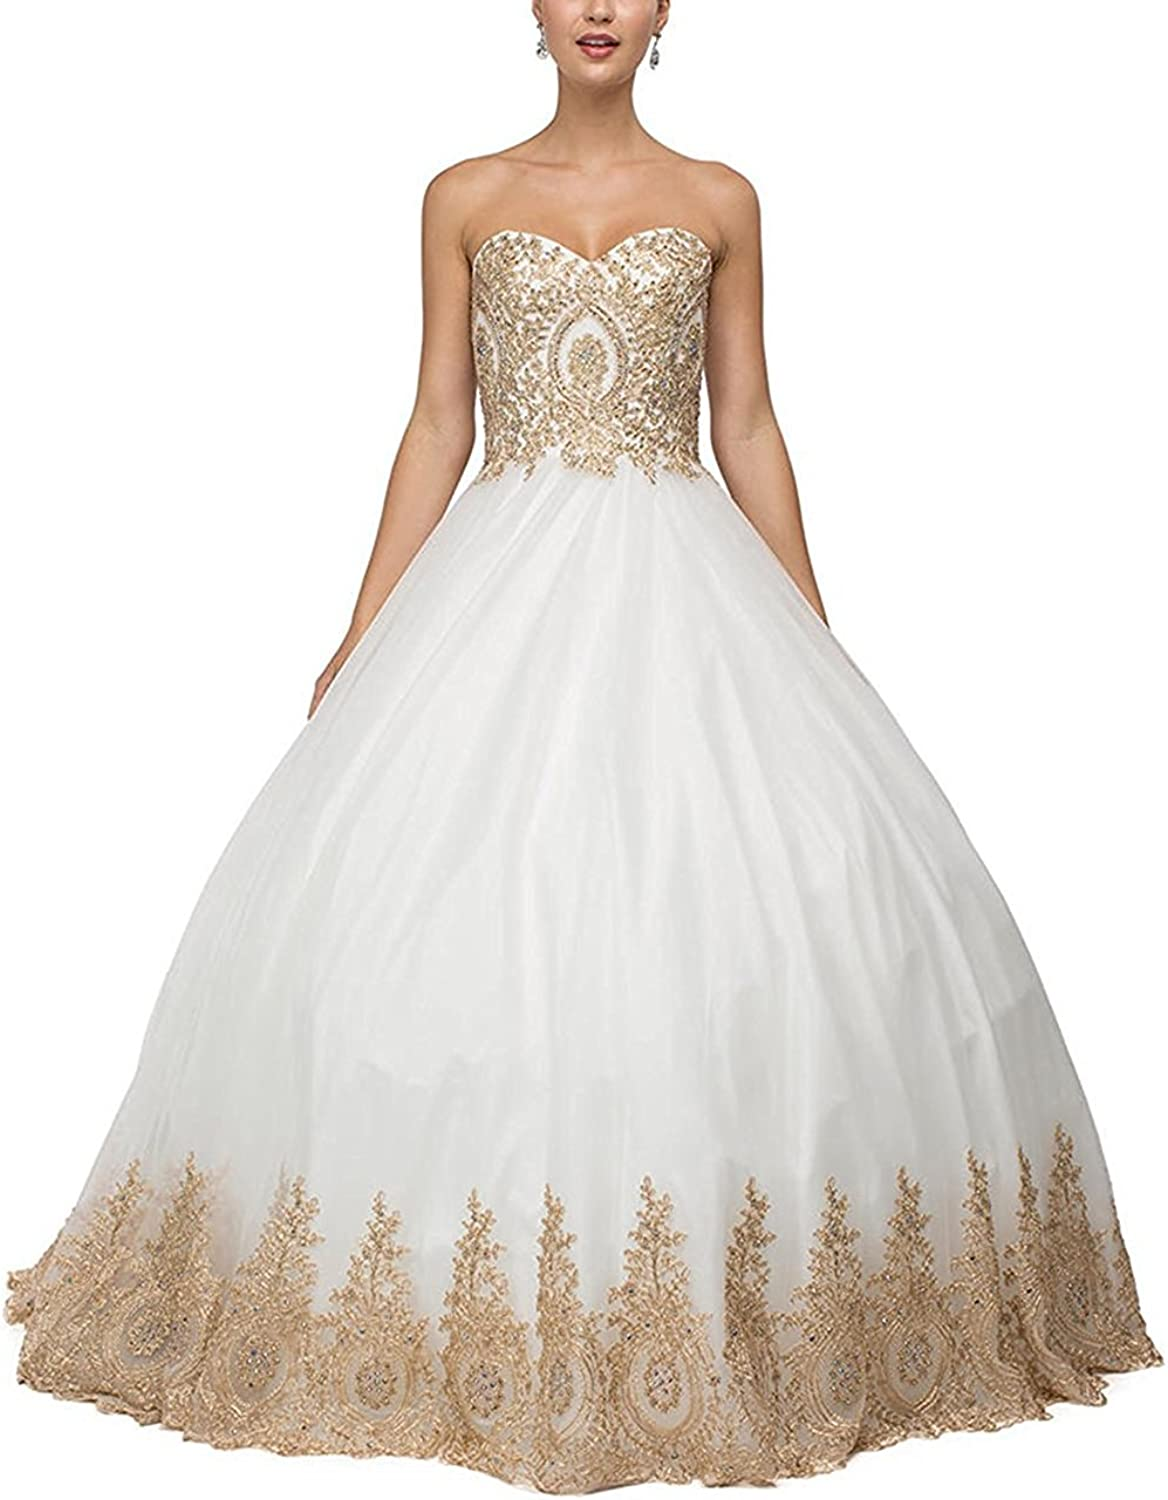 Kaitaijidian Women's  Long Quinceanera Dresses Ball Gown Lace s Prom Dresses 648